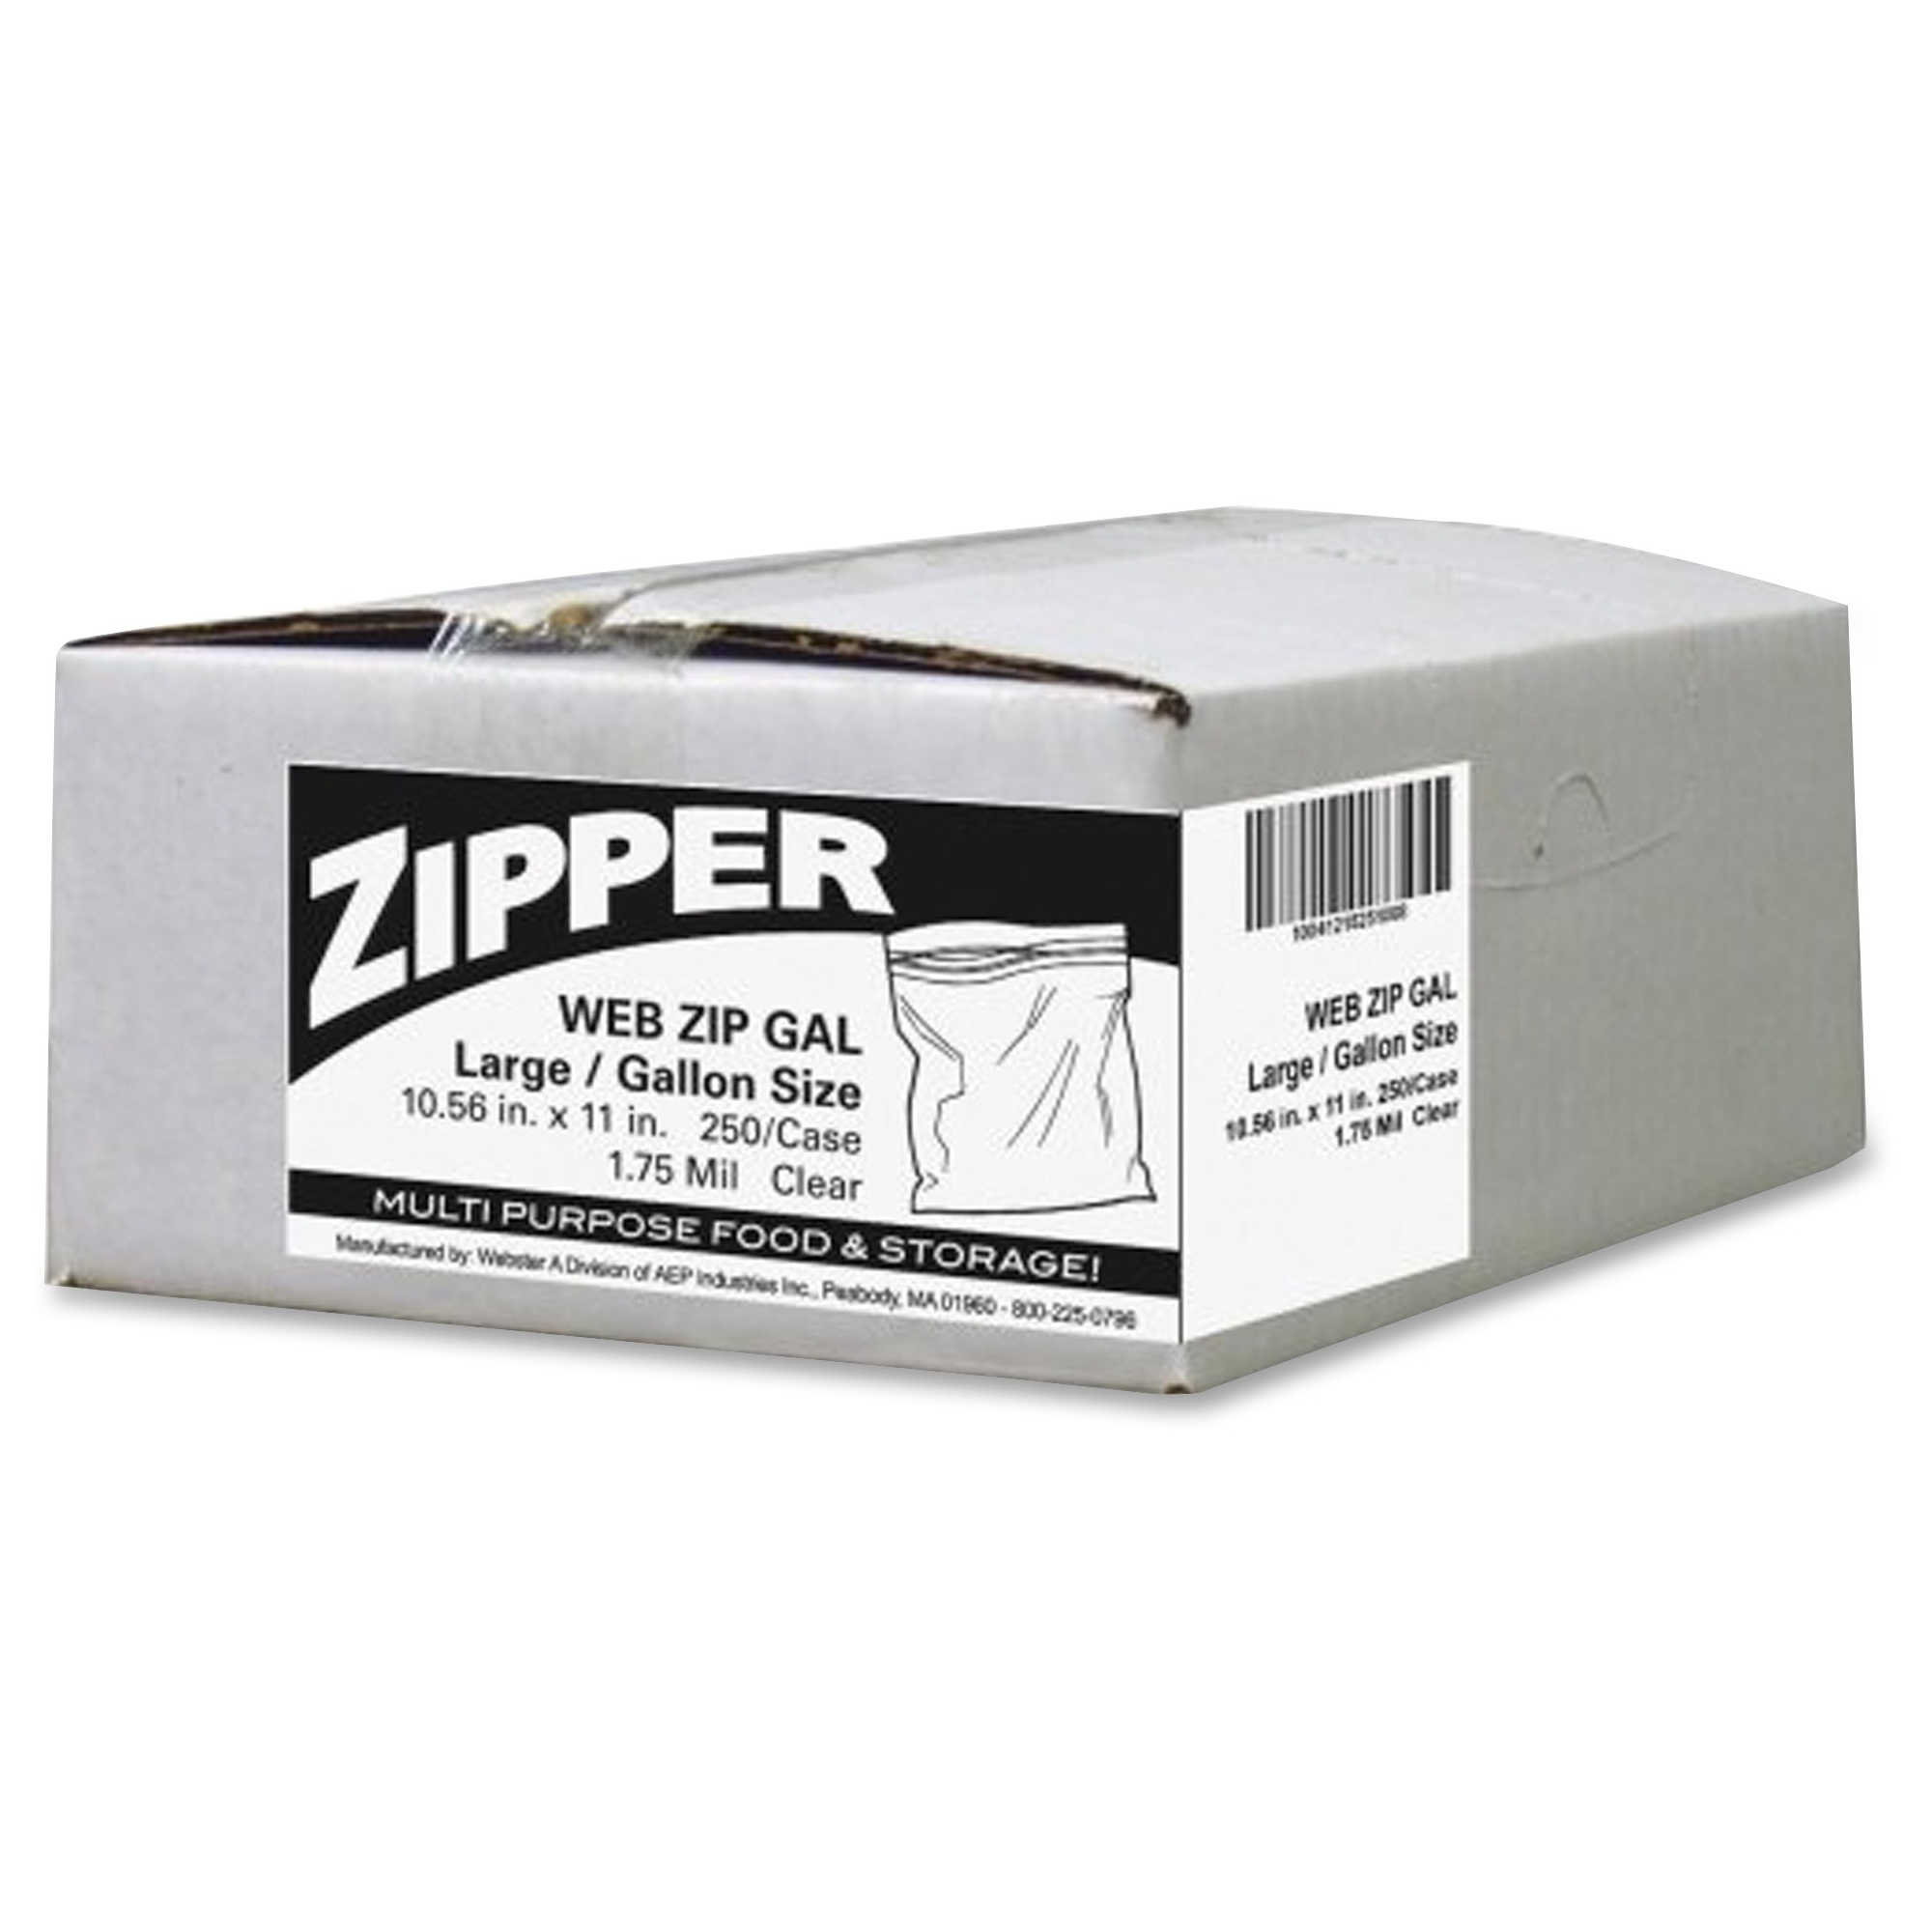 Webster Zipper Storage Bags - 1.75 Mil [44 Micron] Thickness - Clear - Plastic - 250/carton - Food (zip1gs250)